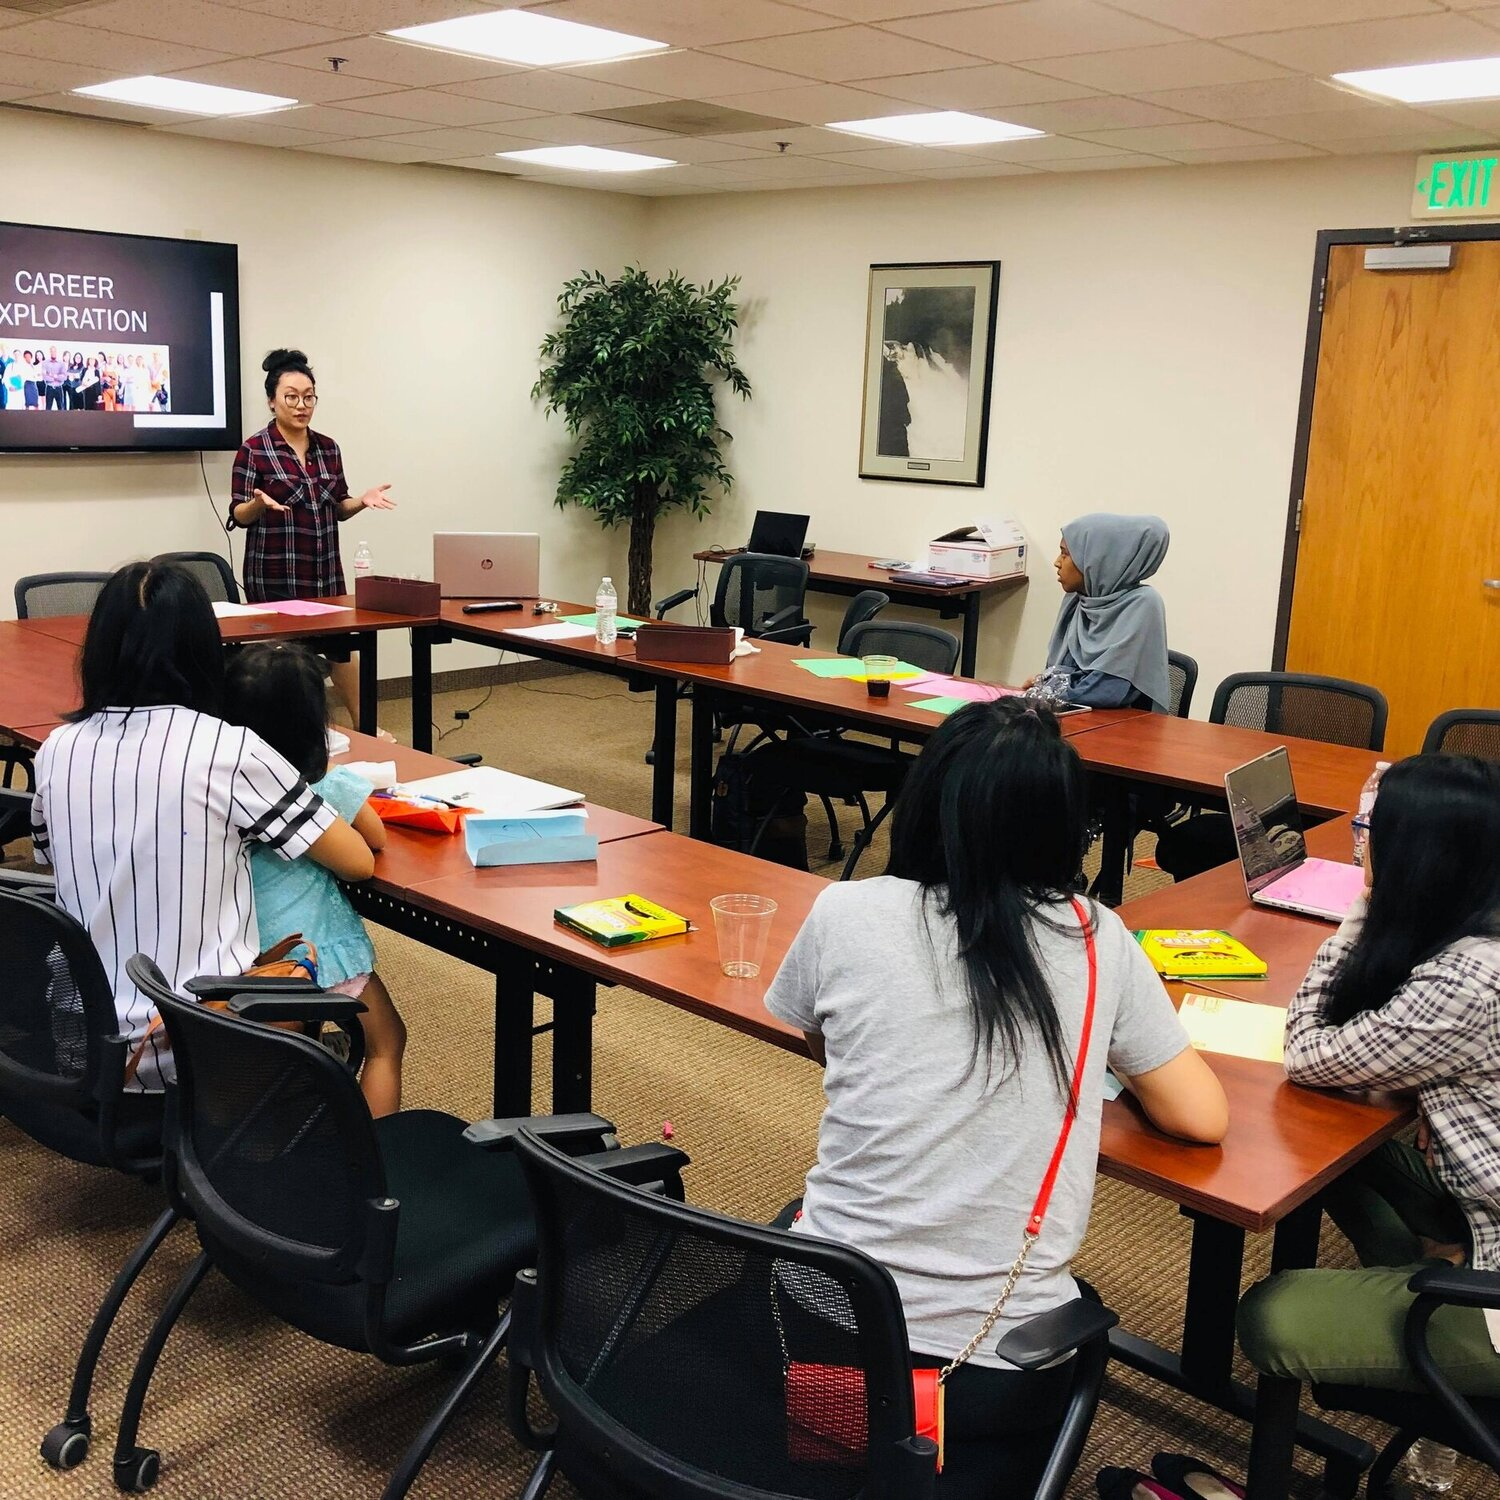 WISE Intern facilitates a Career Exploration workshop with WeLEAD